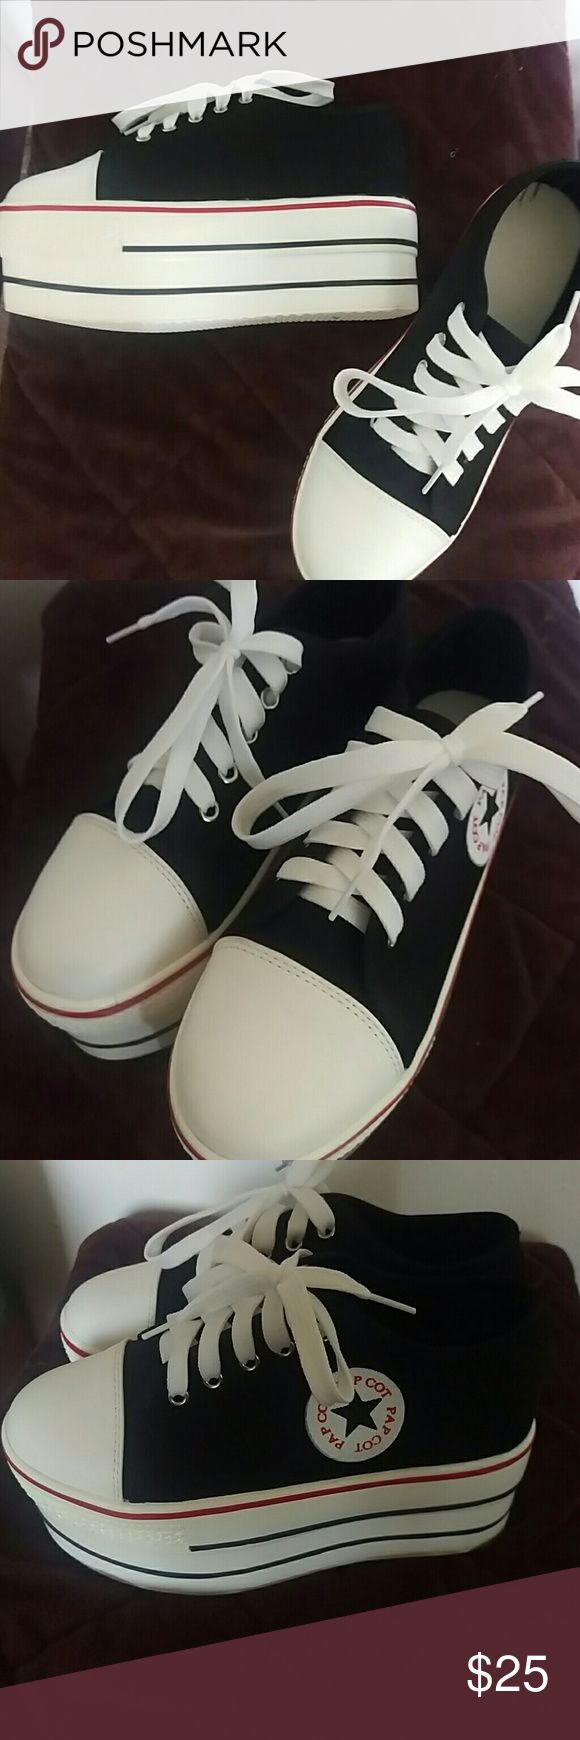 Black and white lace up platform sneakers Converse look alike platform sneakers Shoes Sneakers